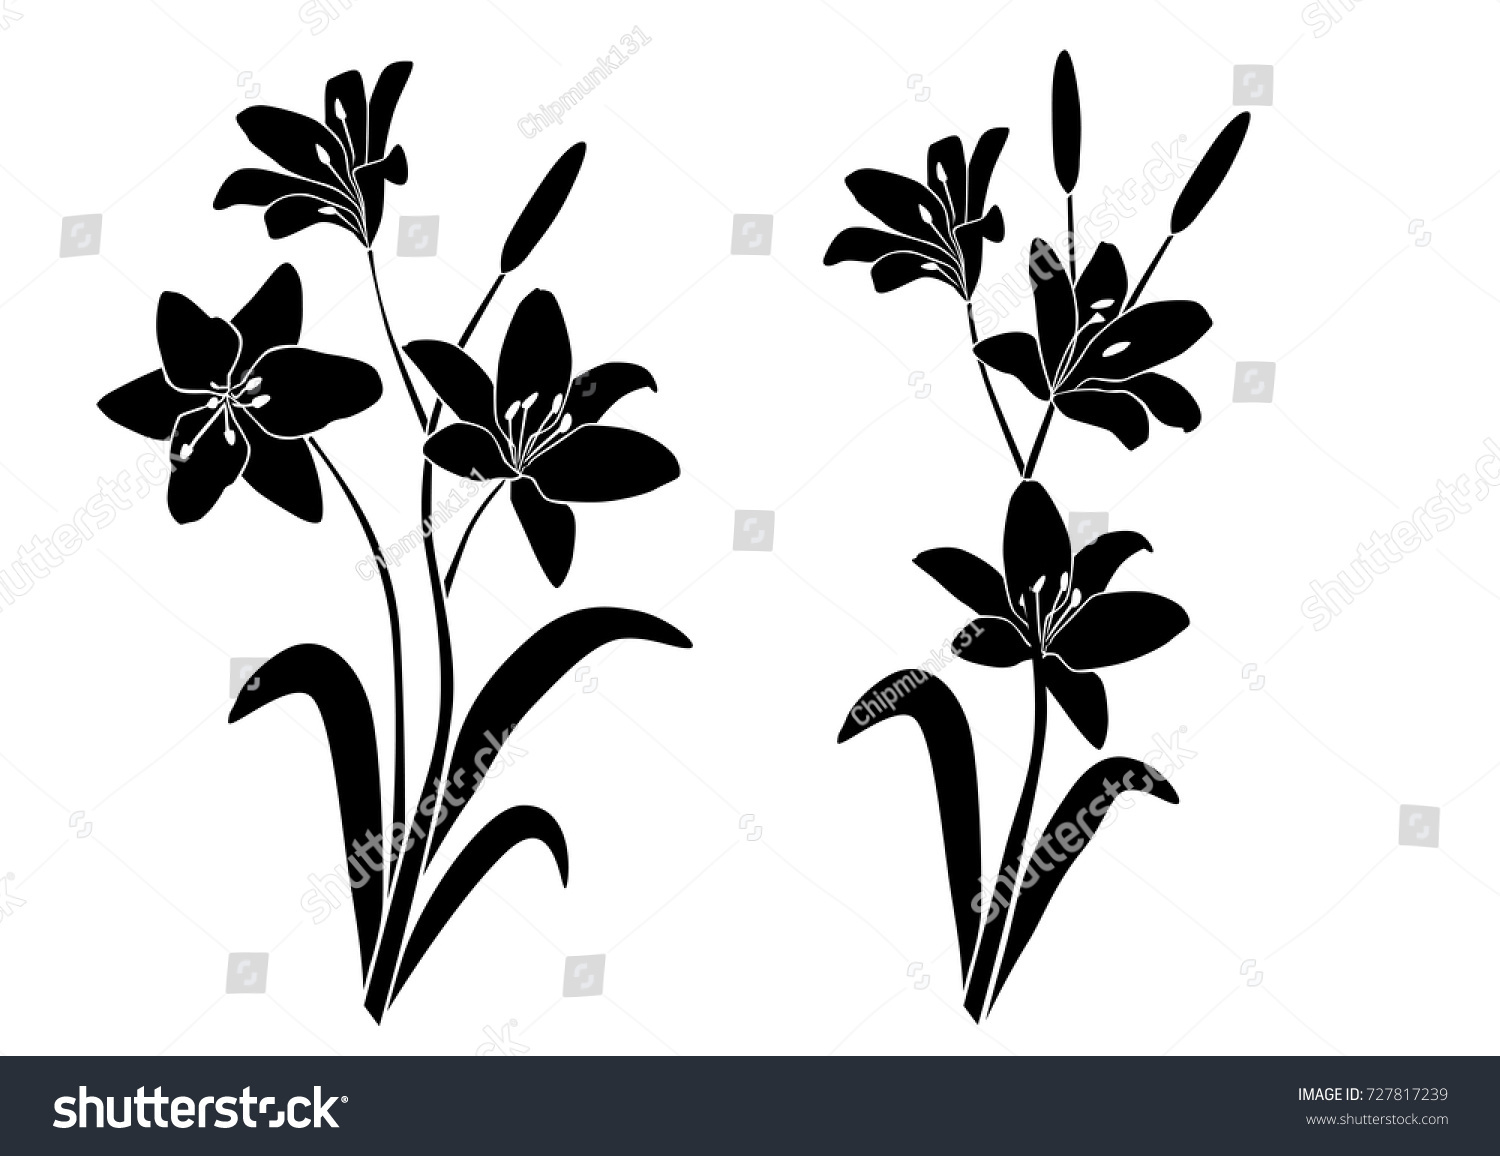 Silhouettes lily flower blossom branches vector stock vector silhouettes of lily flower blossom branches vector black color isolated on izmirmasajfo Choice Image